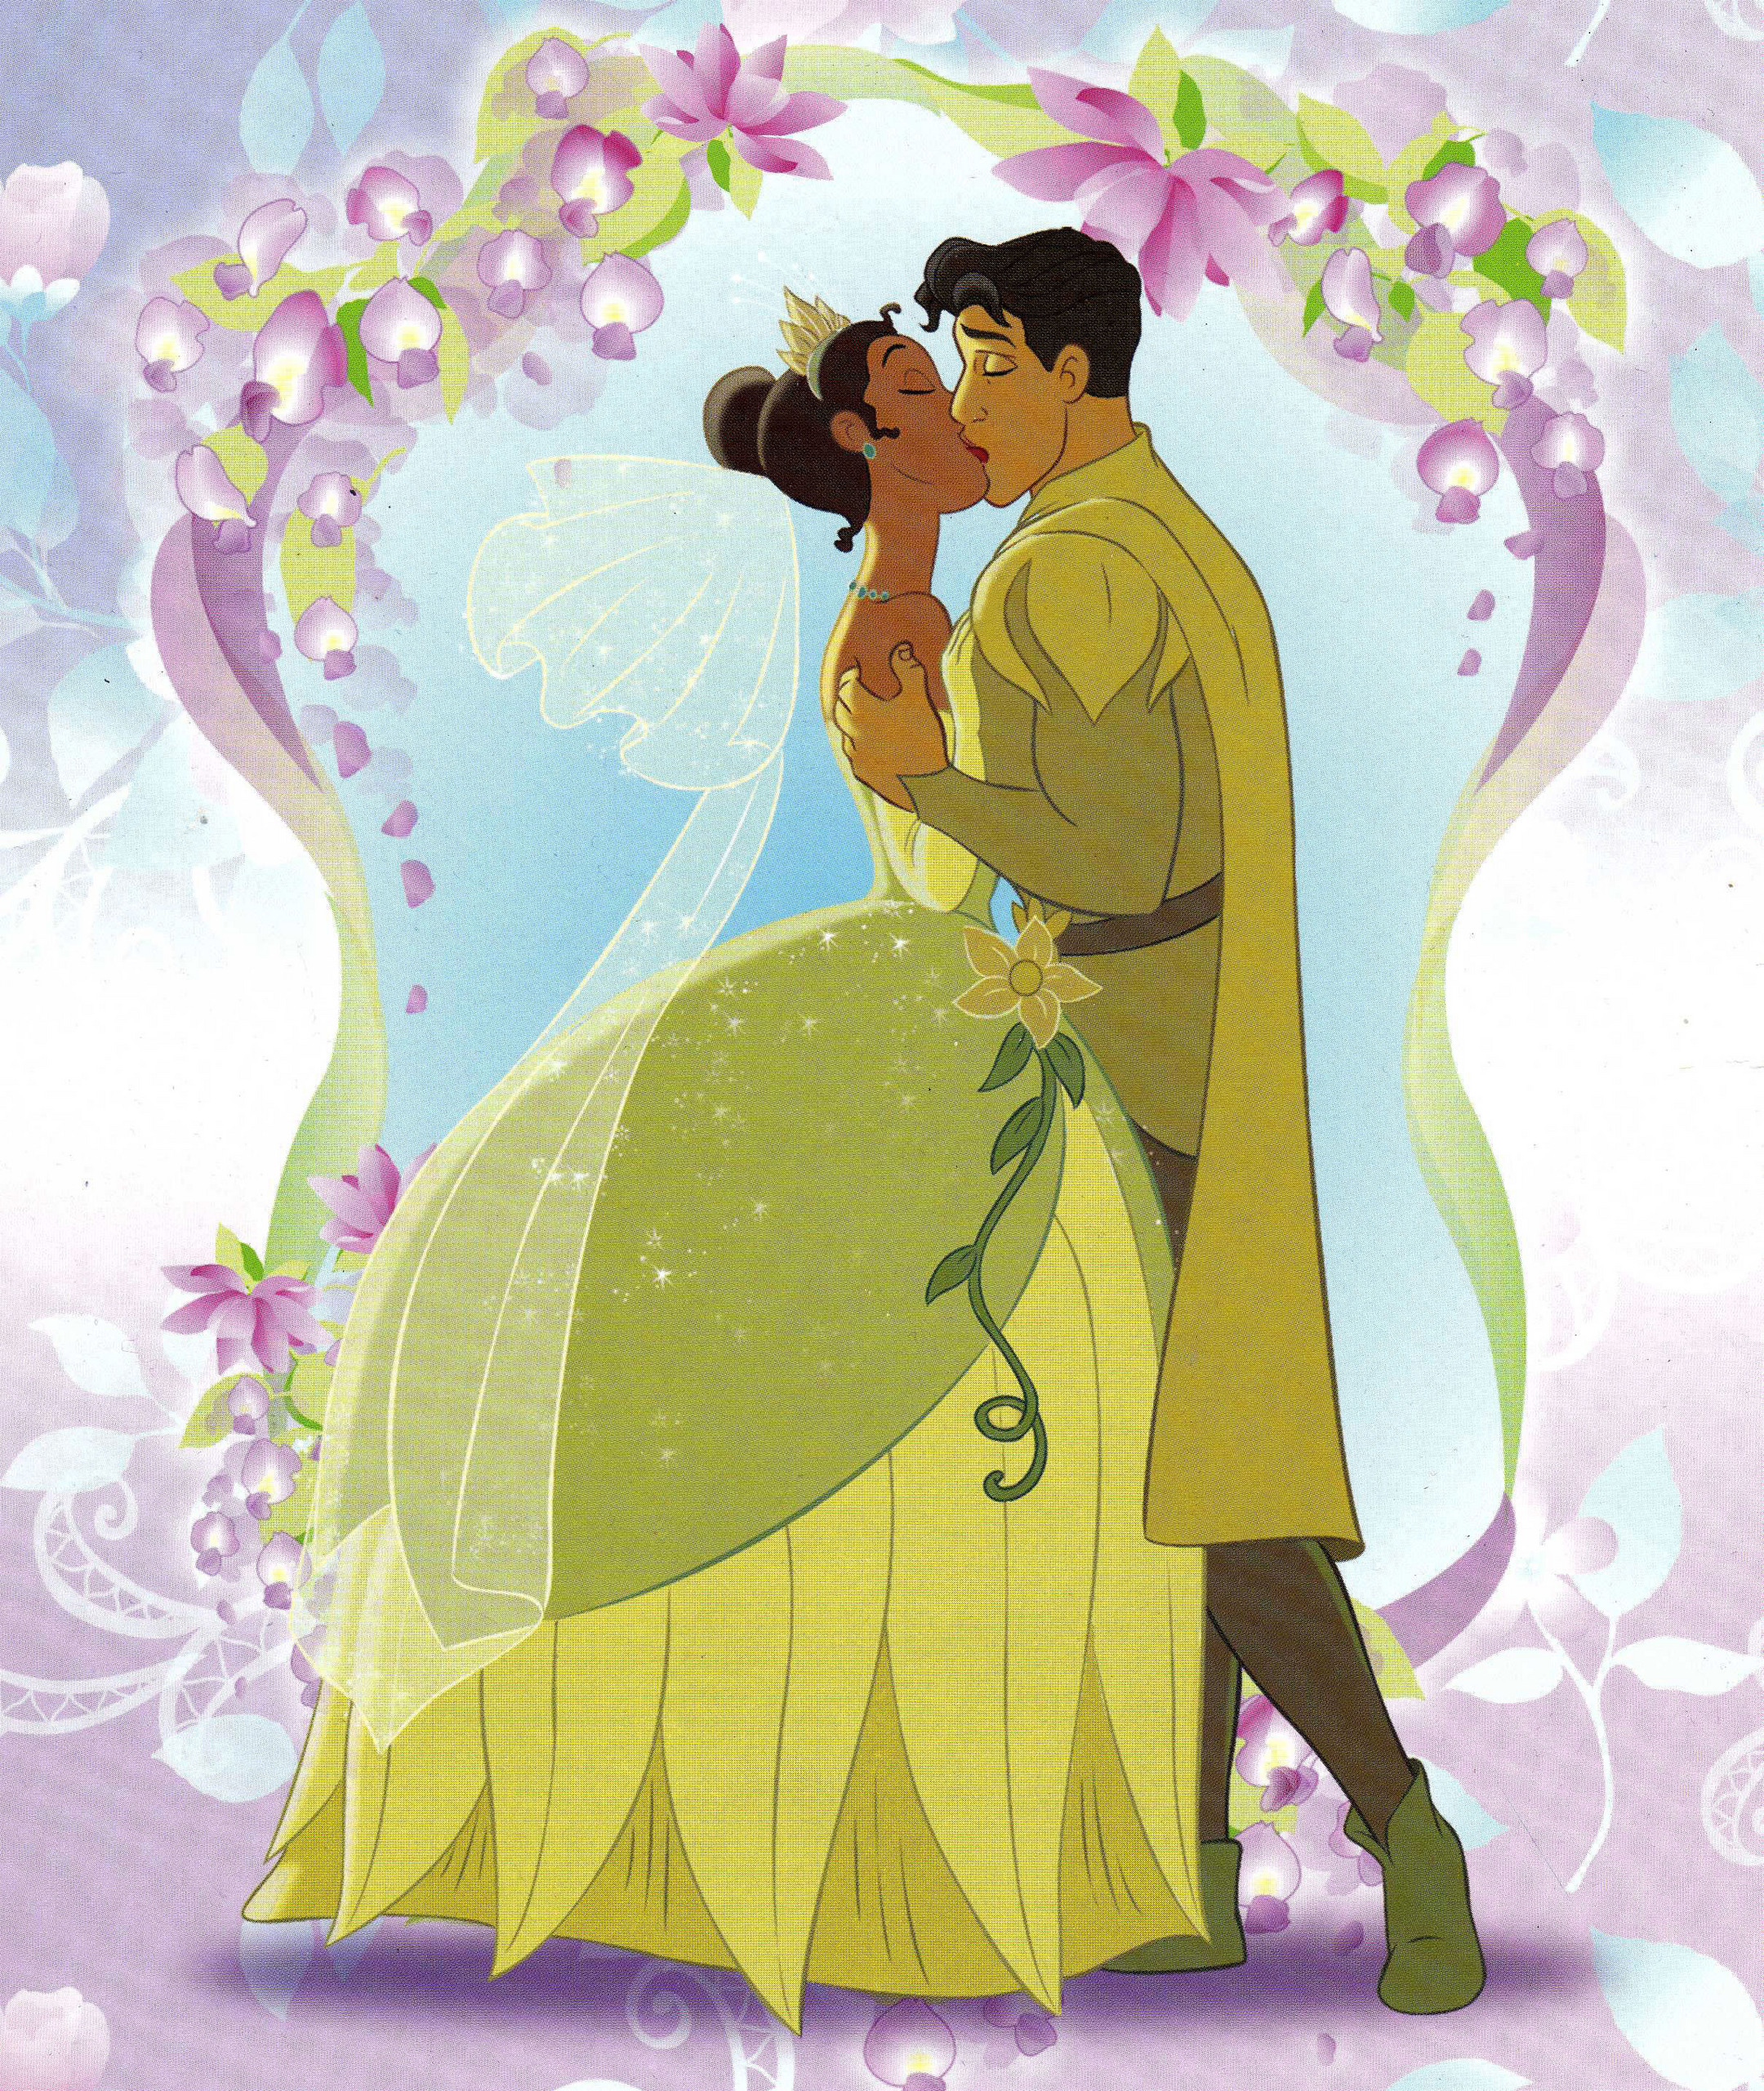 https://i0.wp.com/images4.fanpop.com/image/photos/17900000/Tiana-Naveen-s-kiss-the-princess-and-the-frog-17996805-2160-2560.jpg